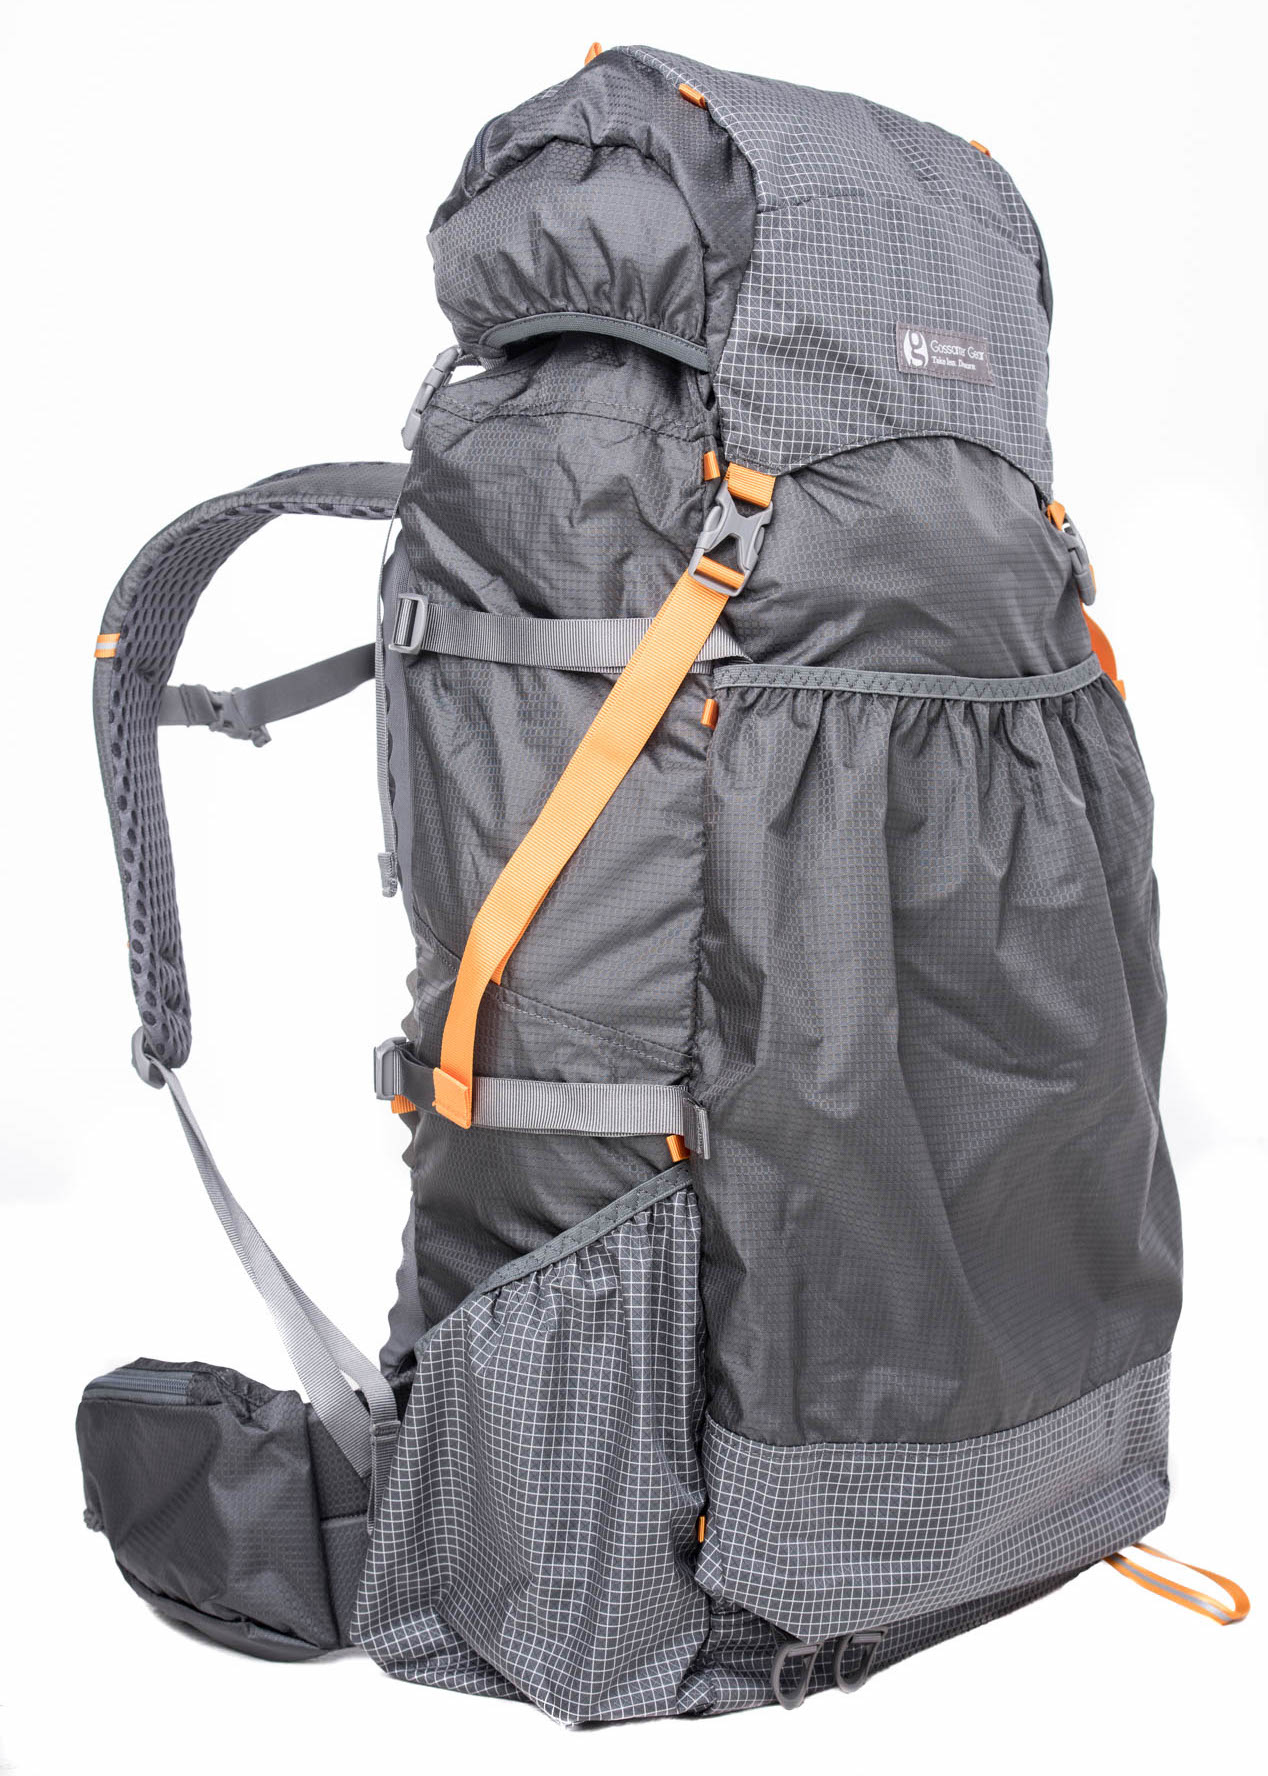 24 Essential Pieces of Backpacking Gear - Sunset Magazine ...